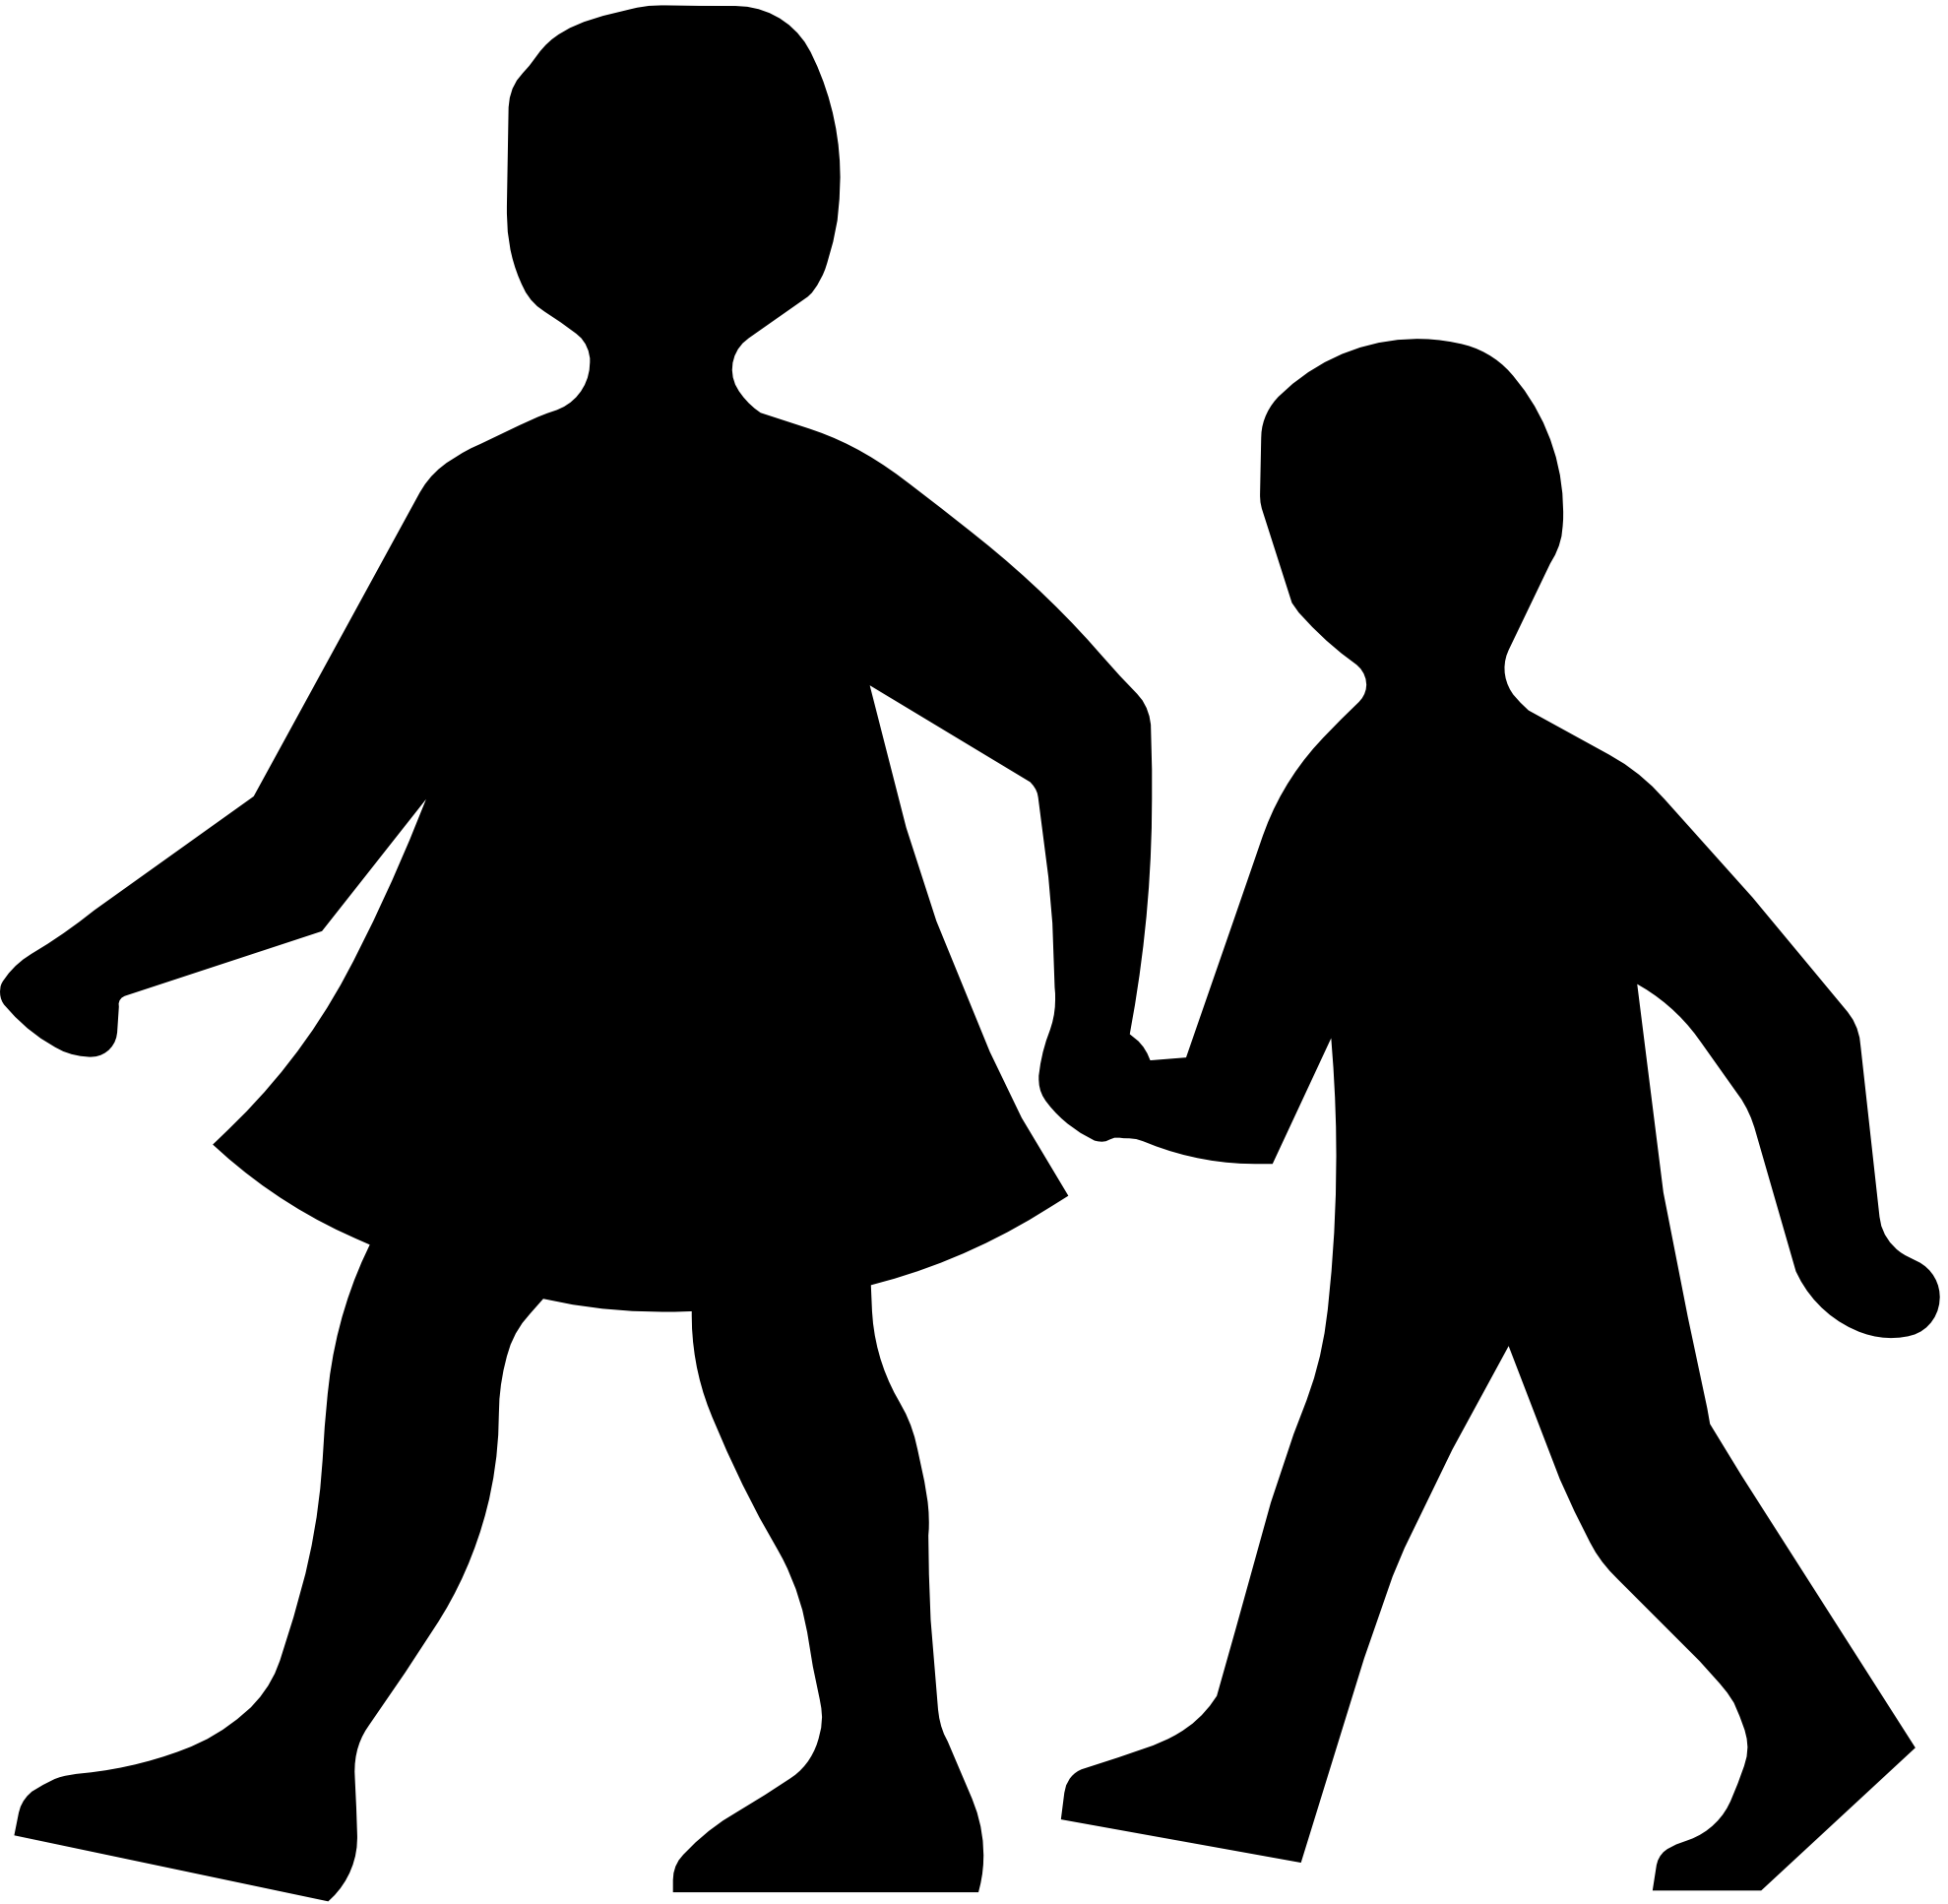 Of playing at getdrawings. Kids clipart silhouette